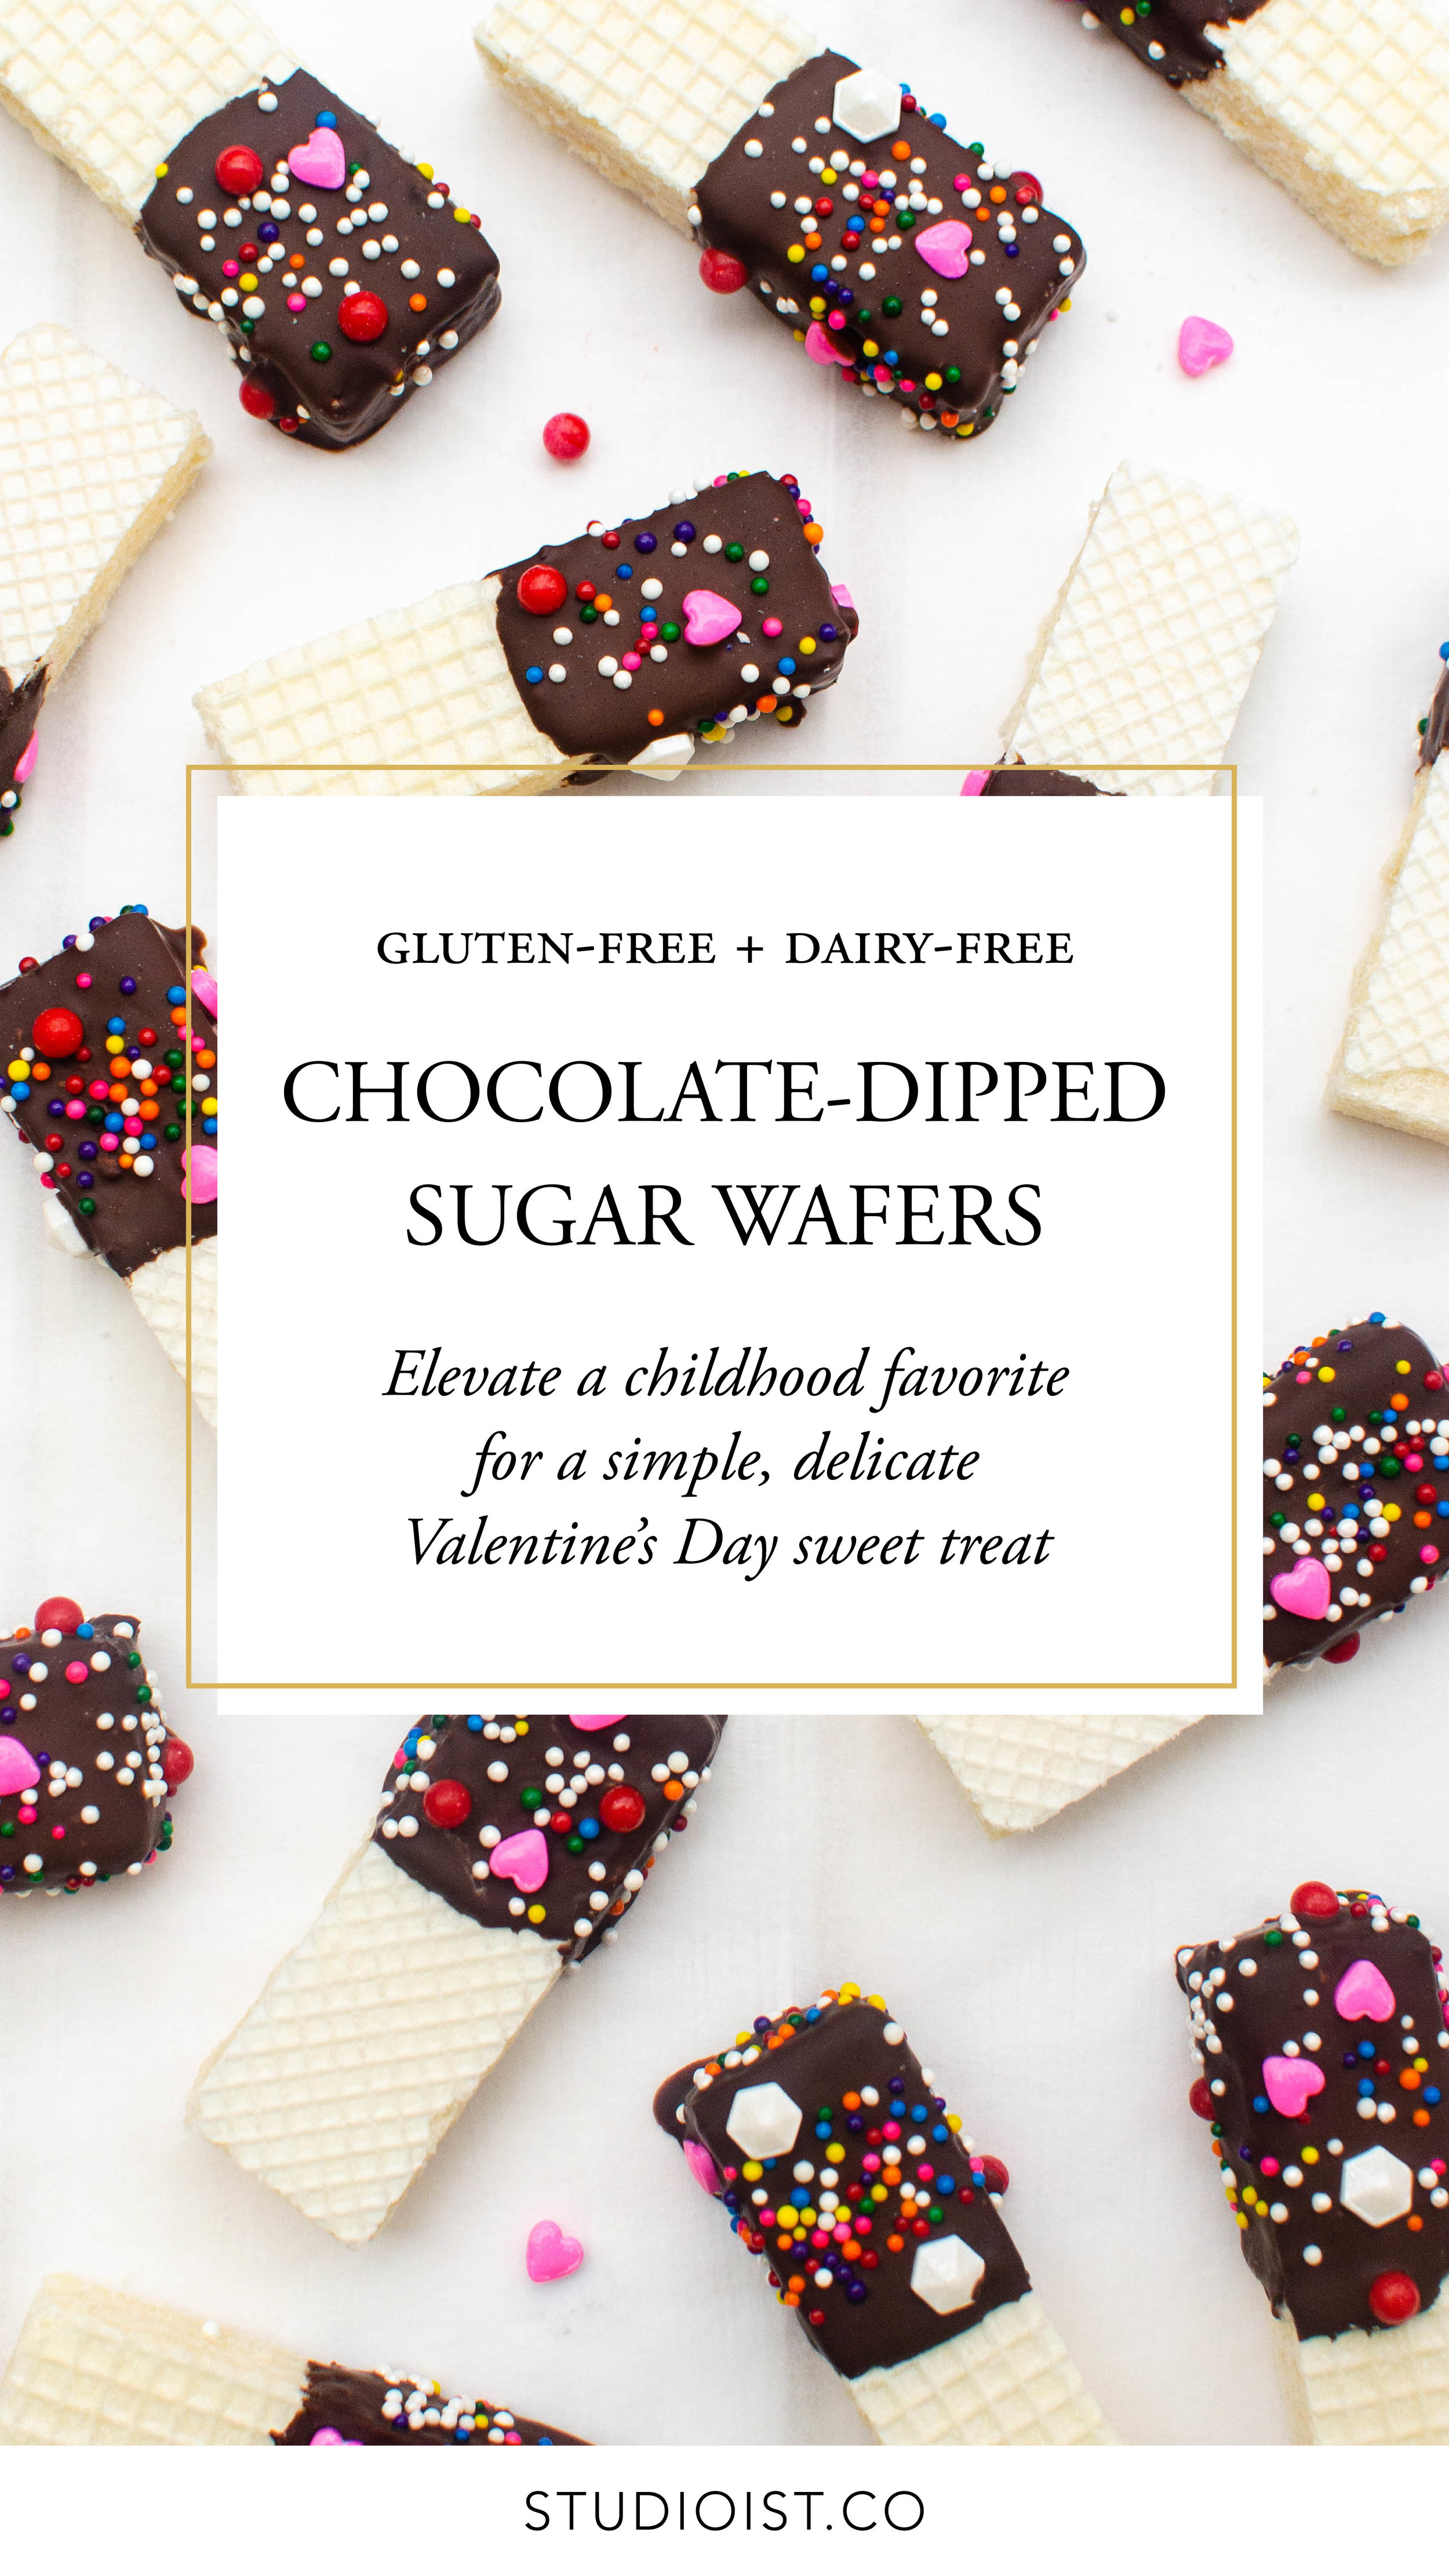 ChocolateDipped Sugar Wafers - Studioist.jpg